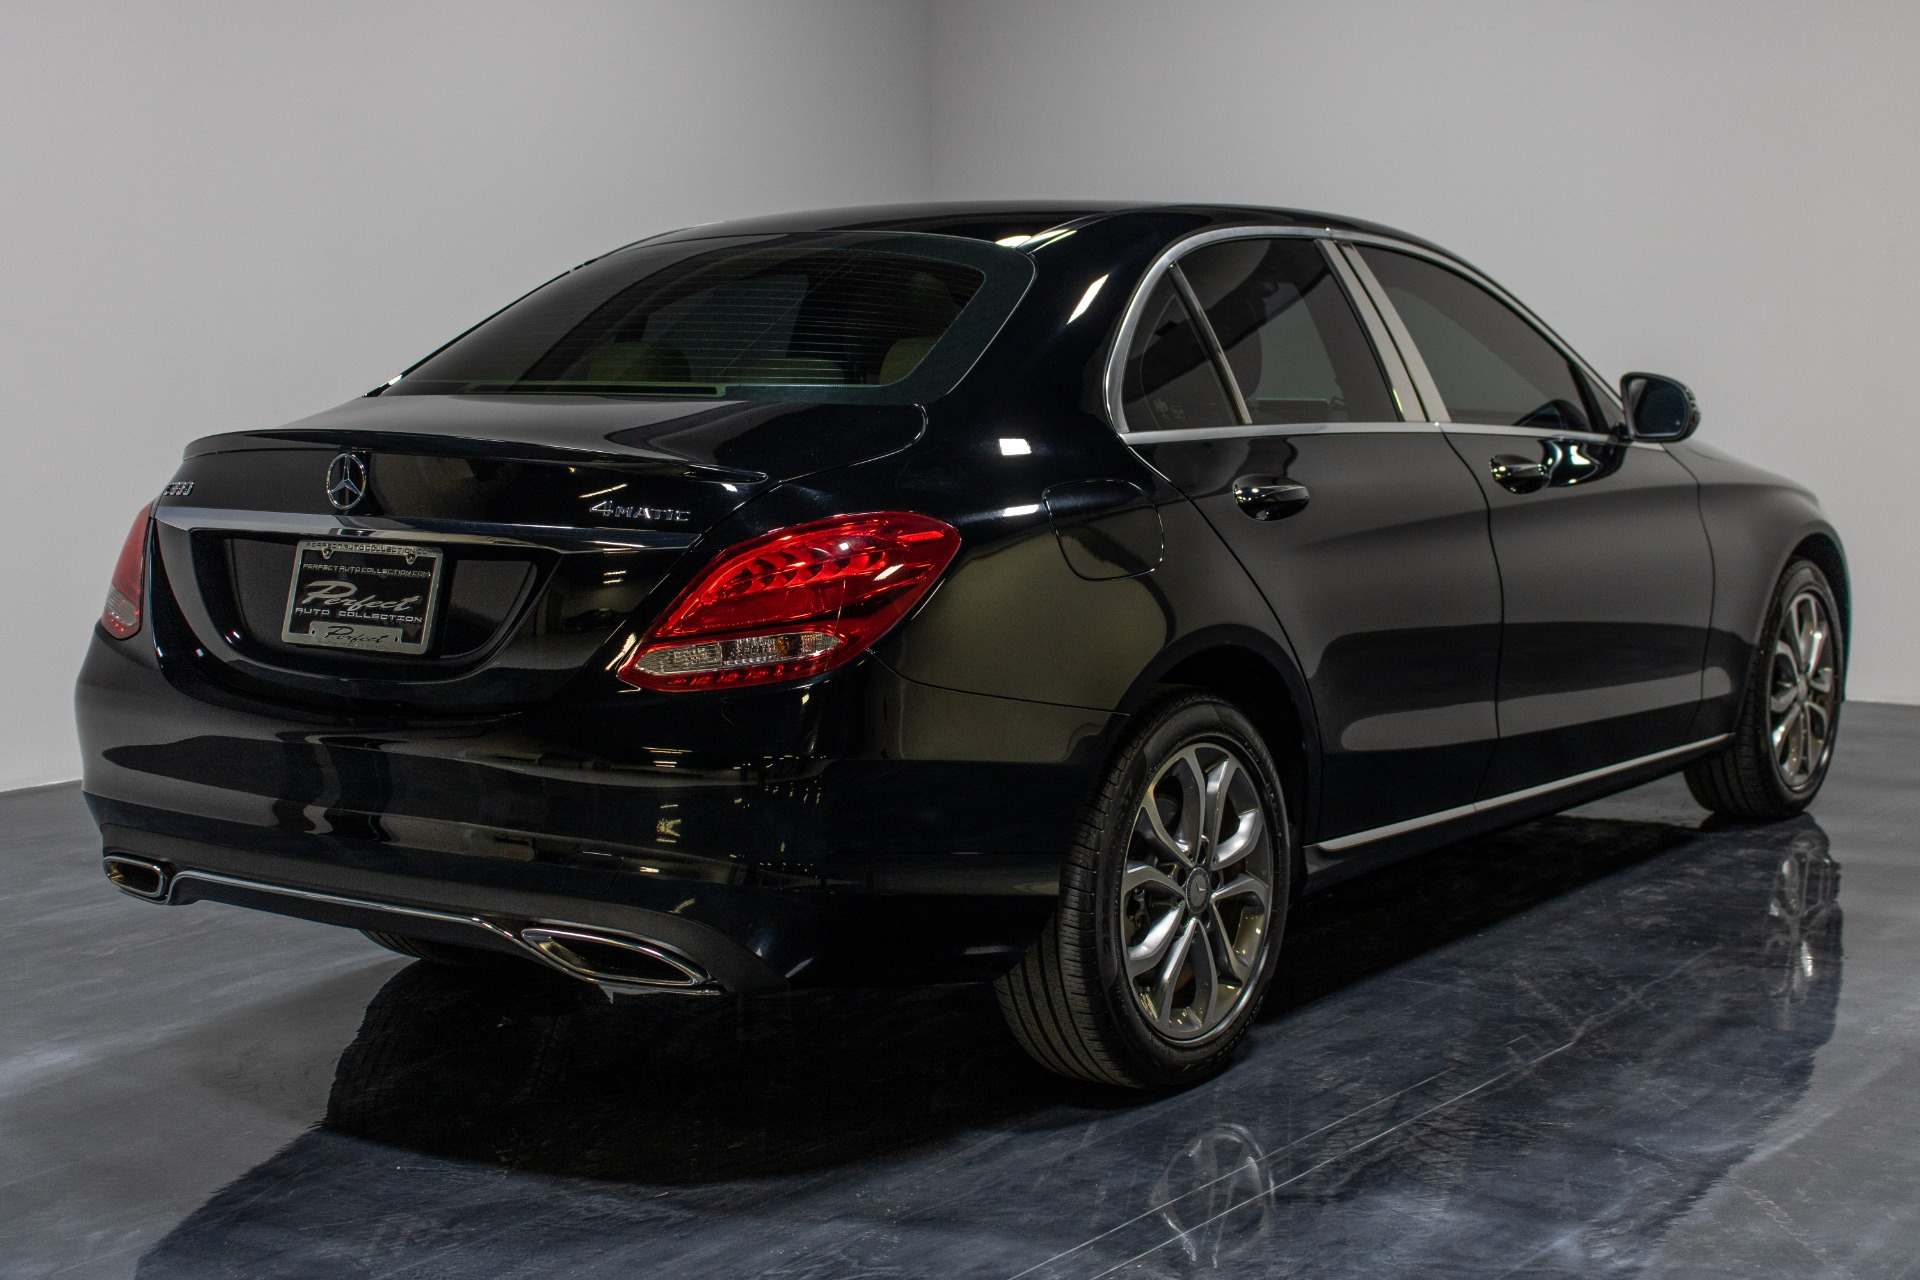 Used 2016 Mercedes-Benz C-Class C 300 4MATIC Sedan 4D for sale Sold at Perfect Auto Collection in Akron OH 44310 4